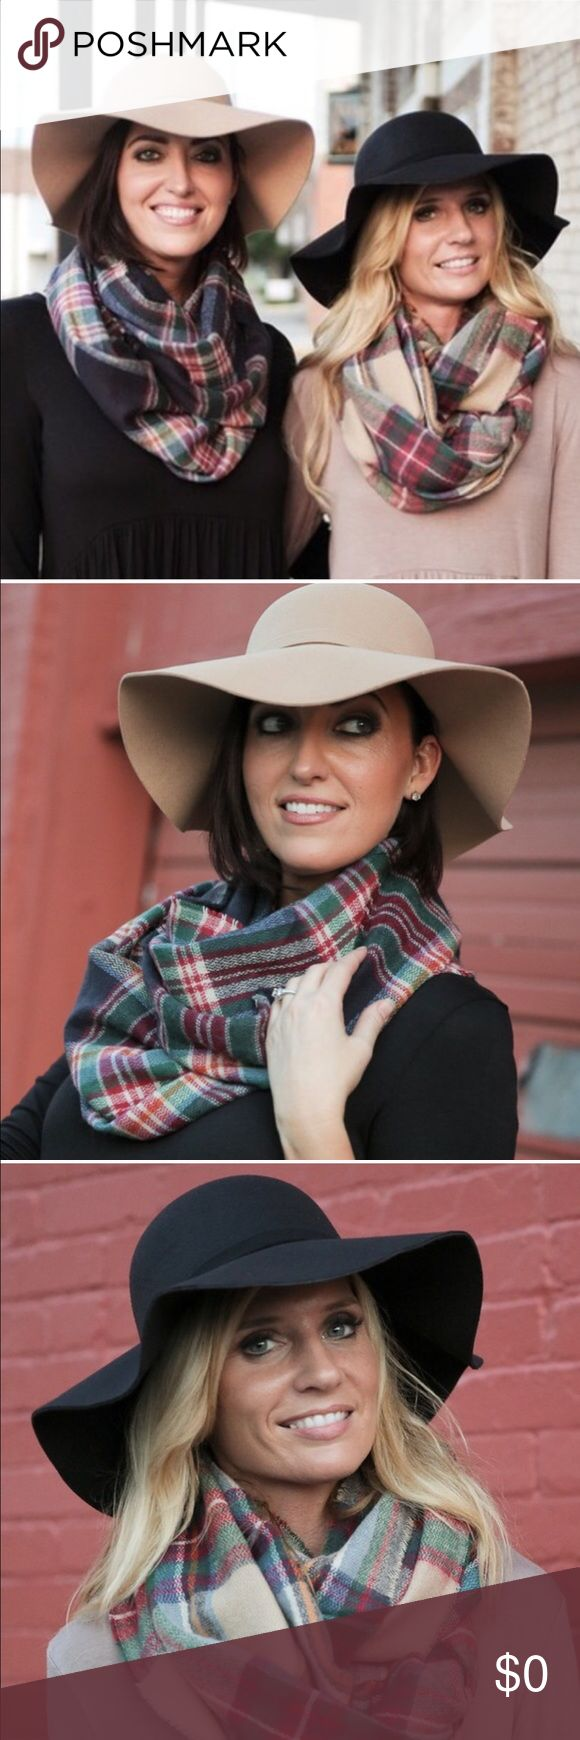 Chic Boho Hats Colors available are black, tan,  and burgundy. These fashionable hats attract attention. You will be able to select color when you click buy or purchase icon. Thank you for visiting my boutique! Infinity Raine Accessories Hats